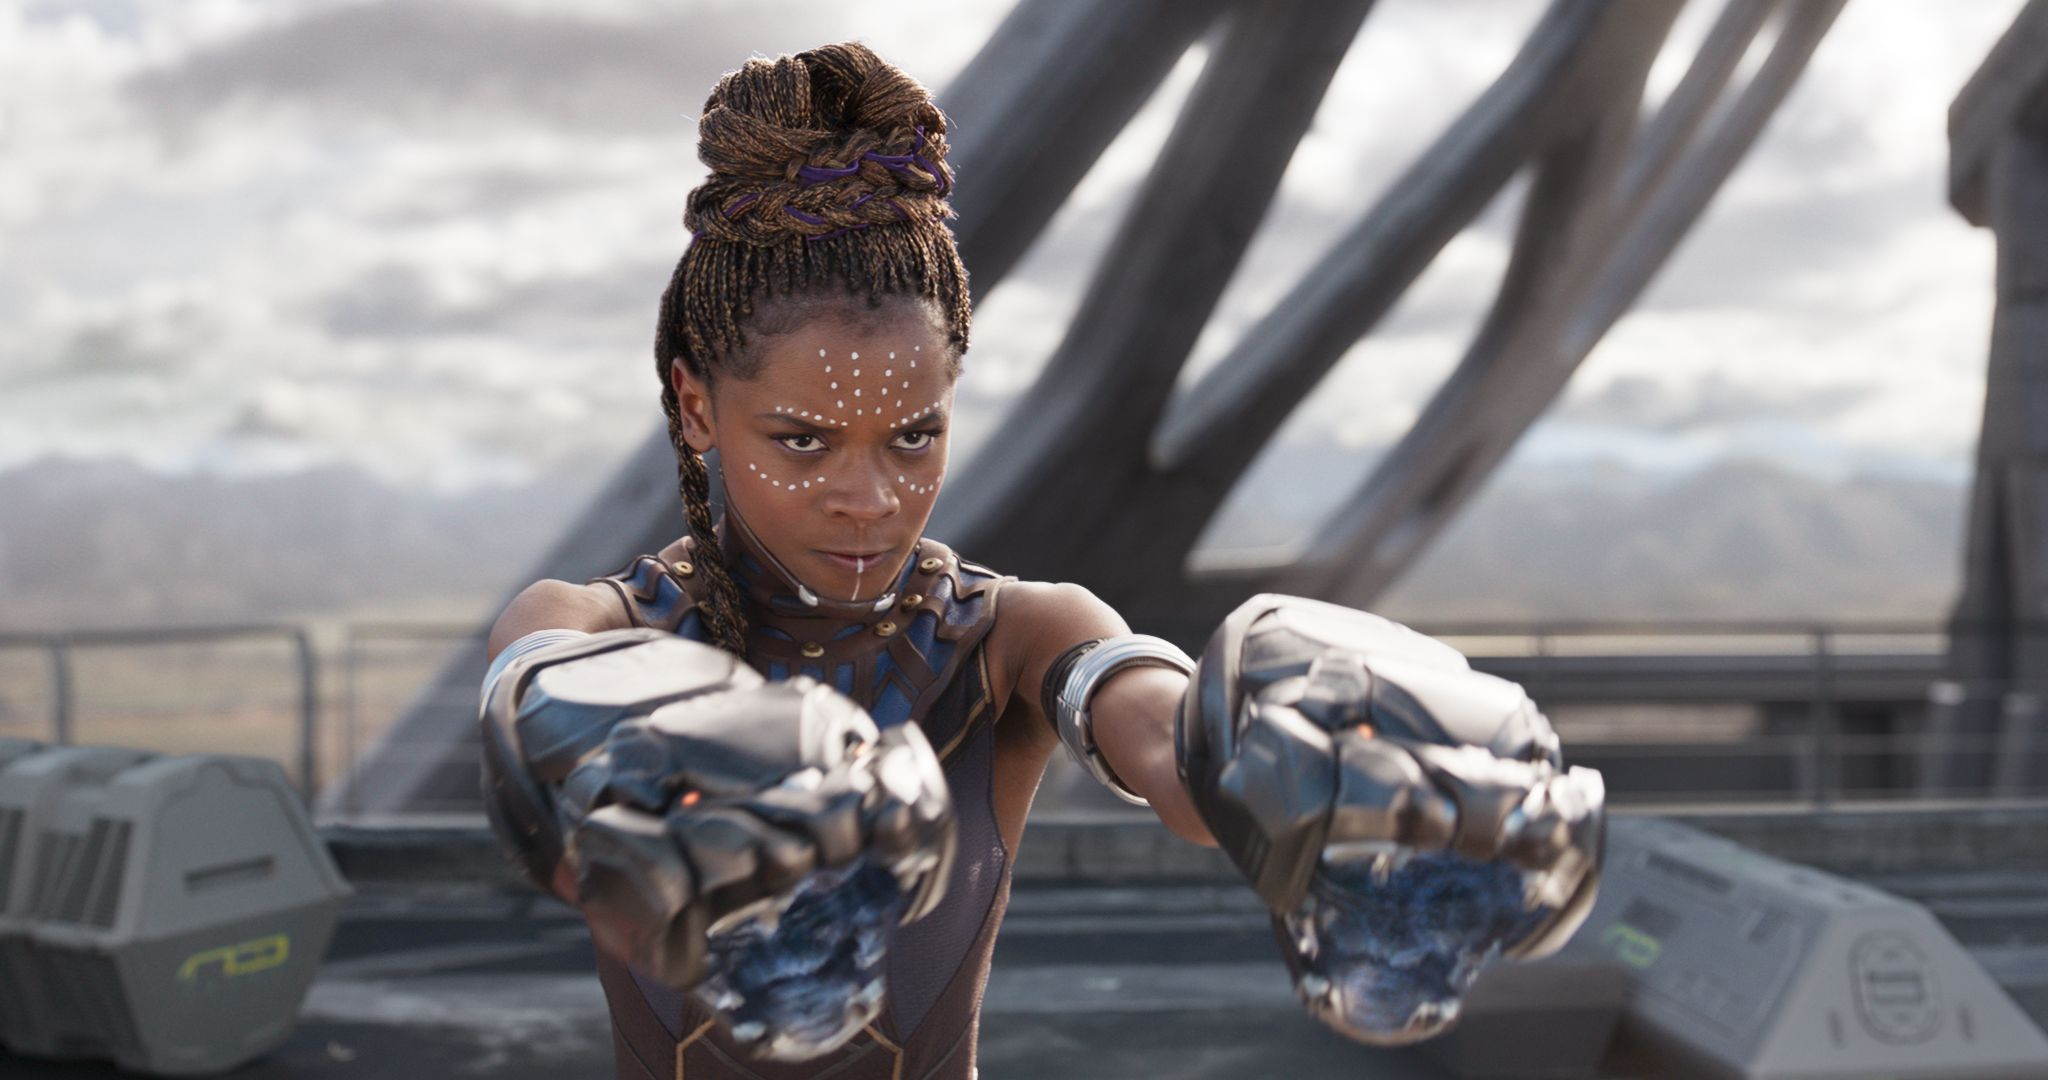 Avengers experience sees MCU star Letitia Wright returning as Black Panther's Shuri